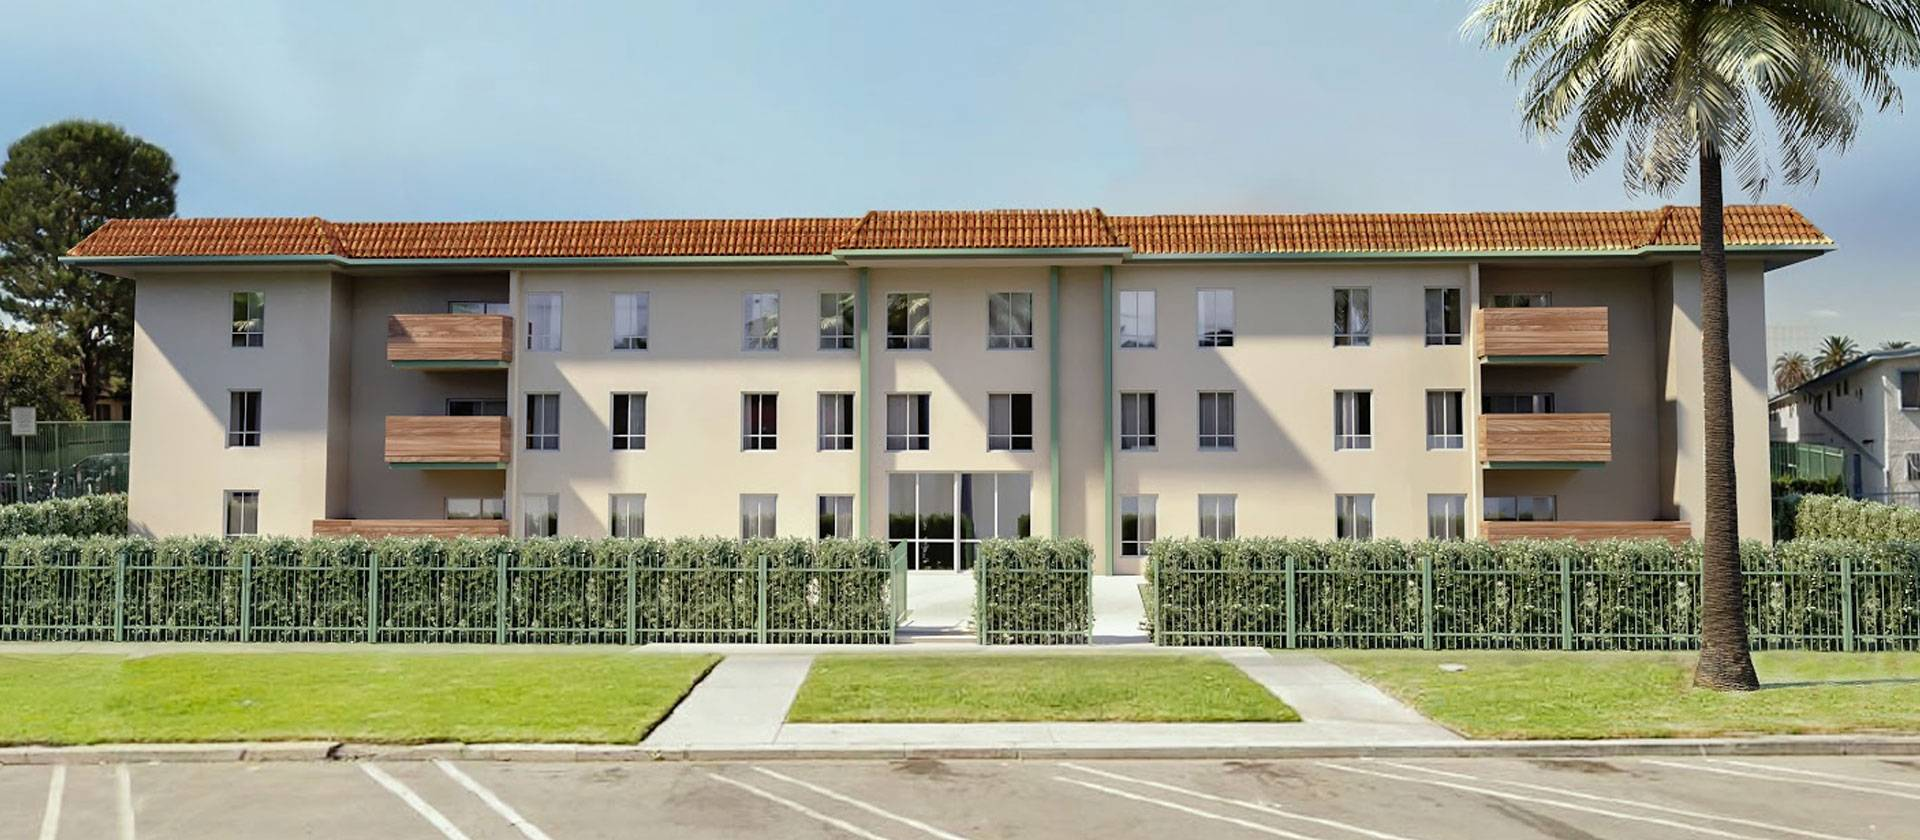 Apartments and Townhouses designed and engineered by Design Everest.